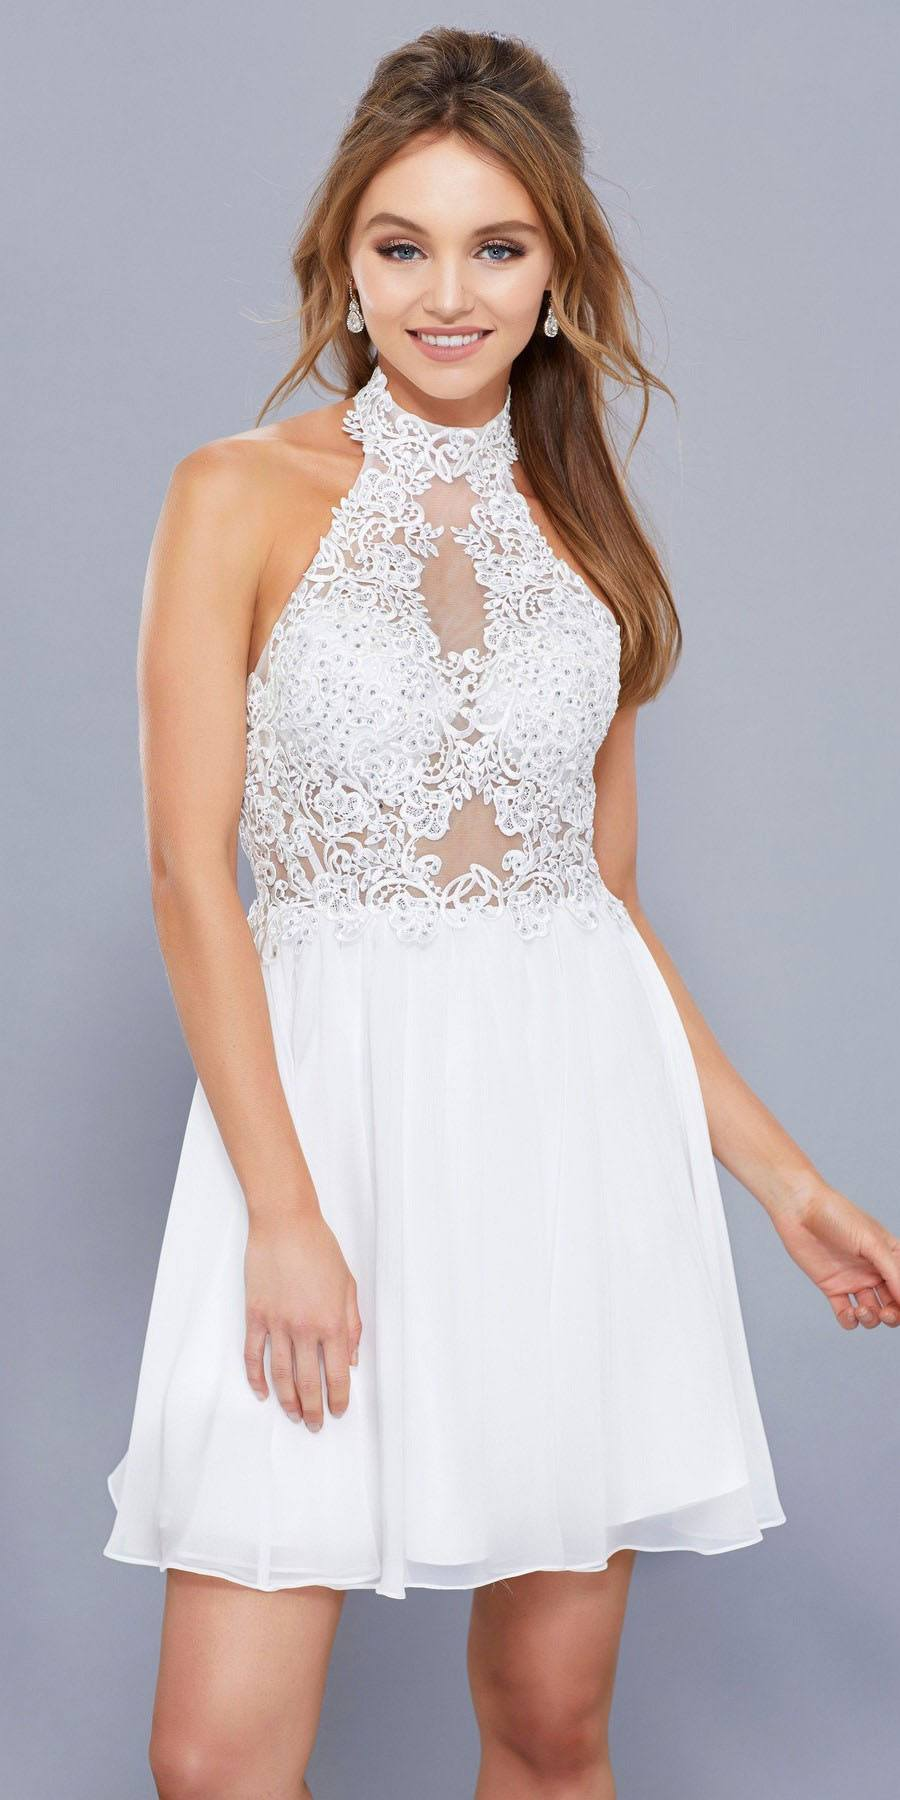 5aea42bb7f0 White Appliqued Halter Top Short Cocktail Dress Open Back. Tap to expand